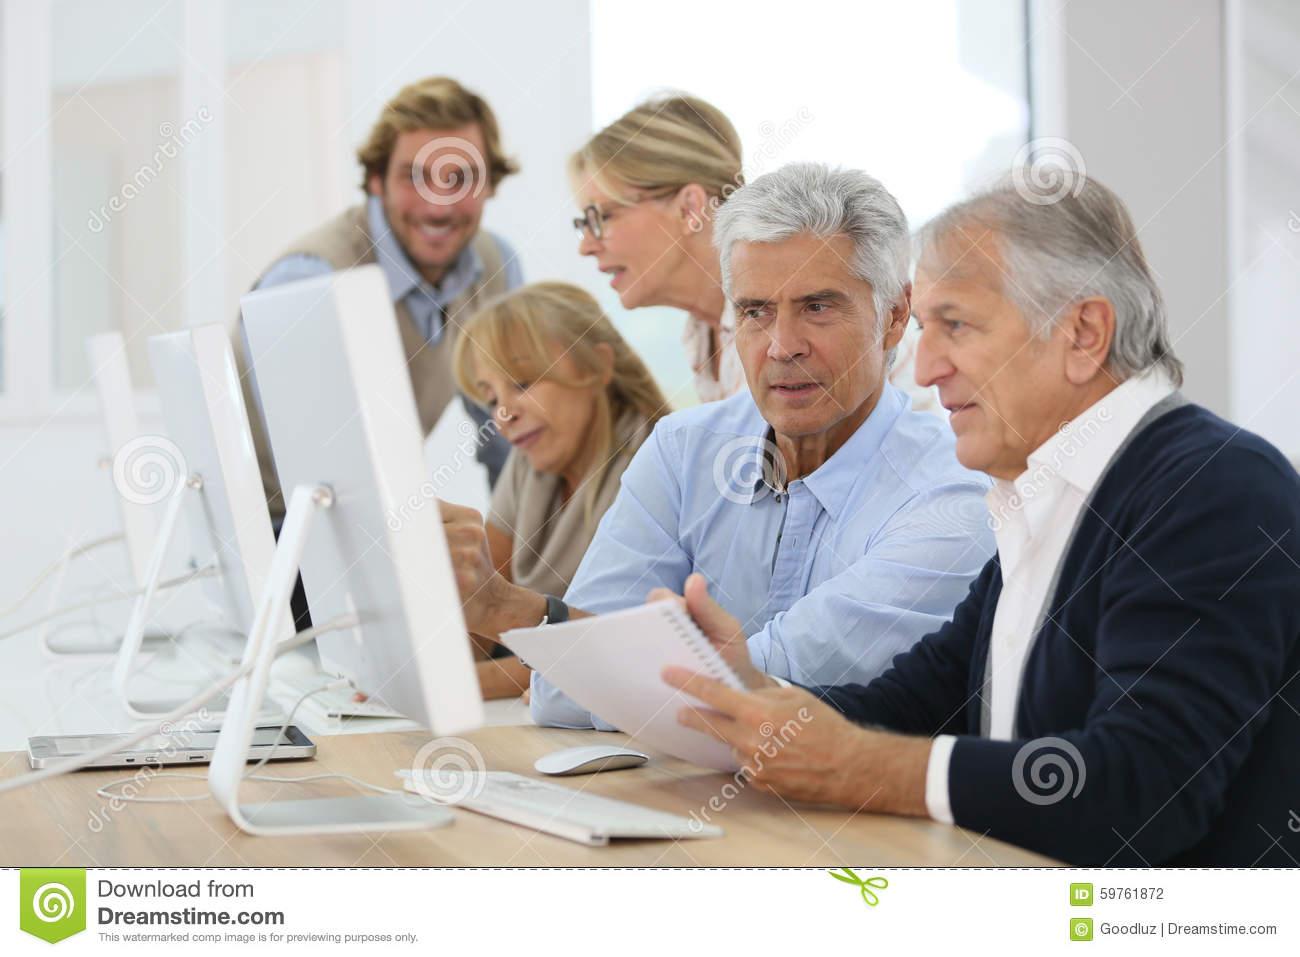 Group of seniors in business training course